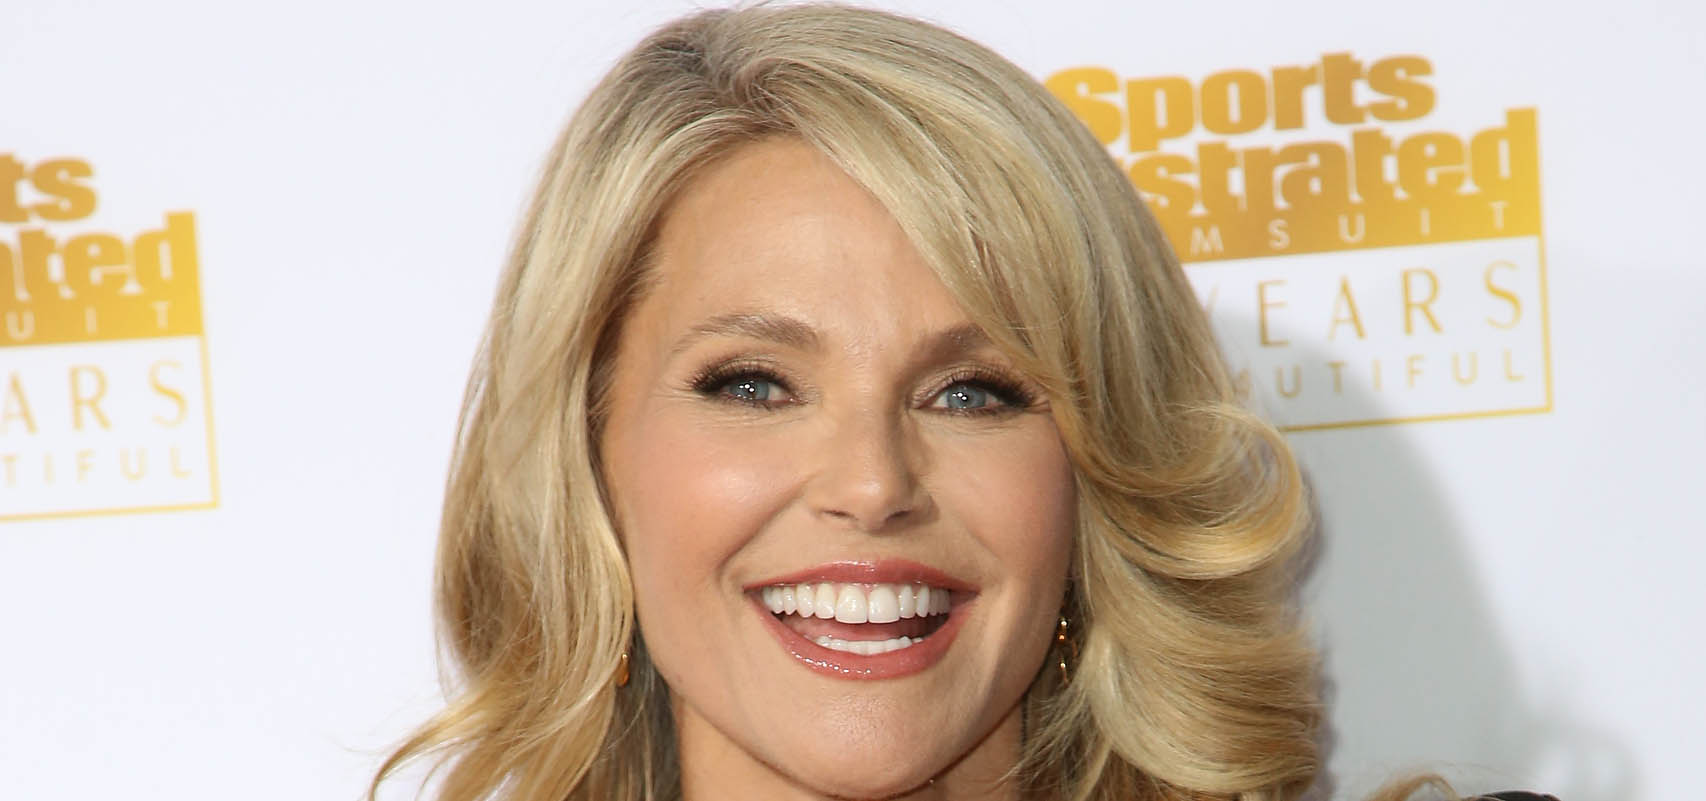 Christie Brinkley, 60, covers People: 'She has the legs of a 30 yo, the face of an angel'